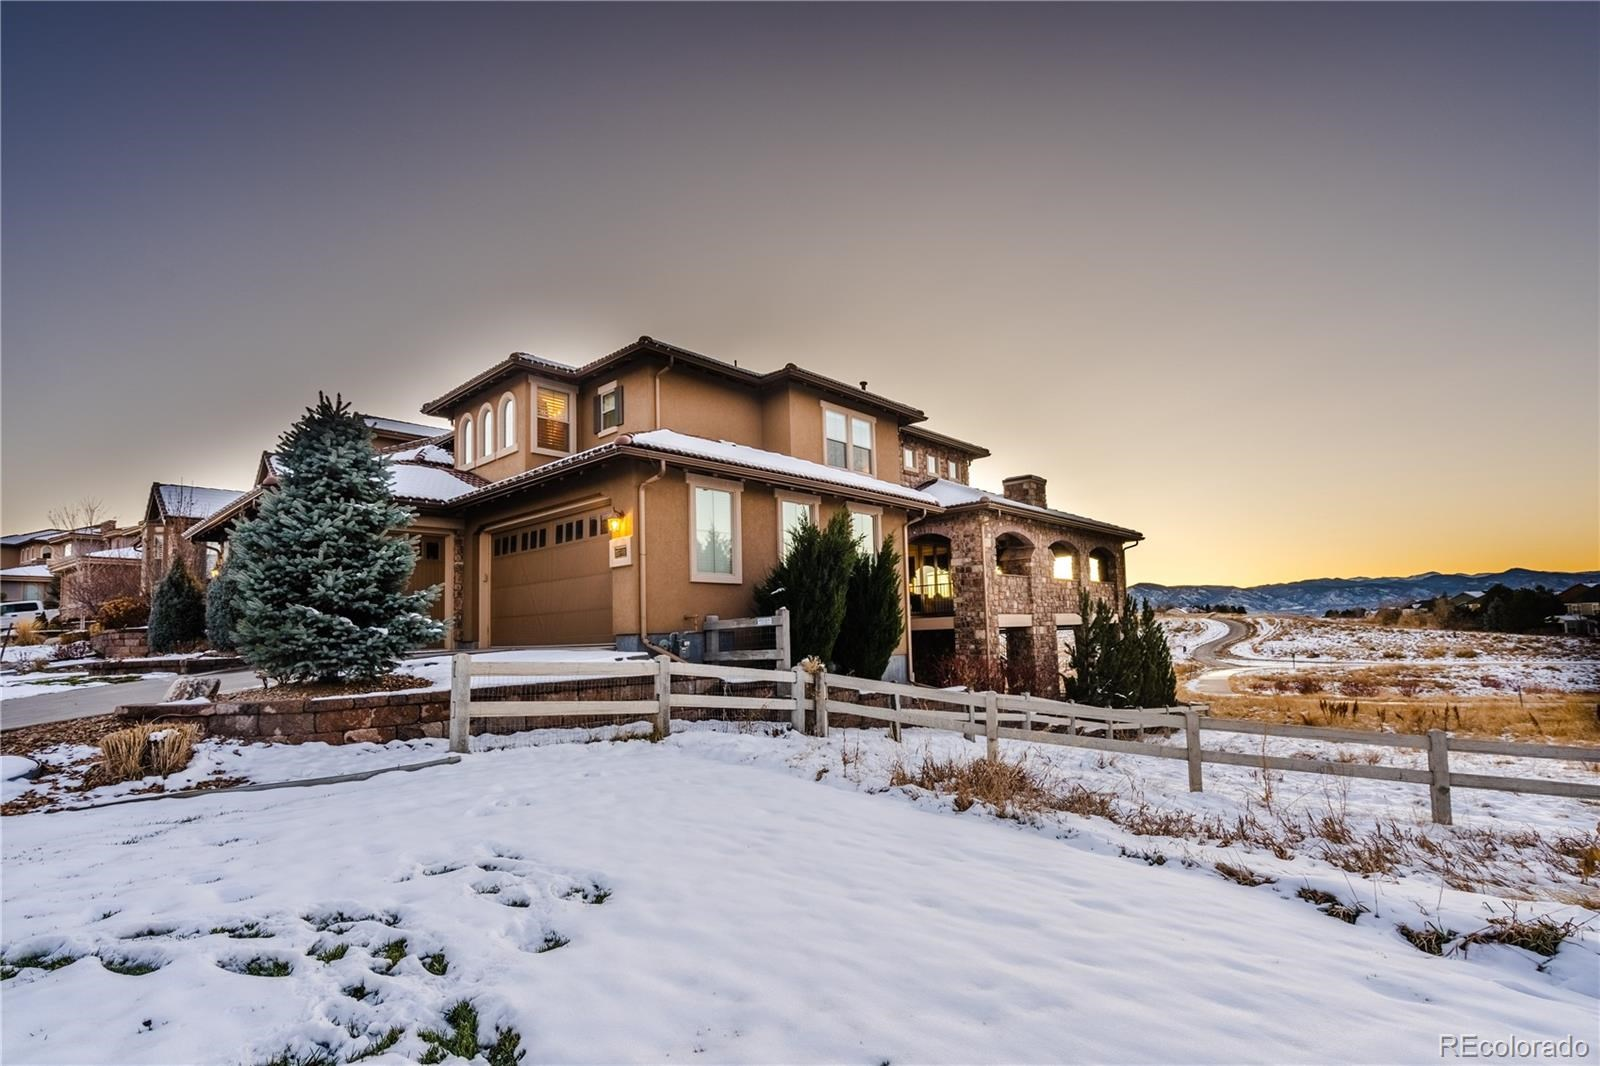 MLS# 2755672 - 2 - 10701 Manorstone Drive, Highlands Ranch, CO 80126